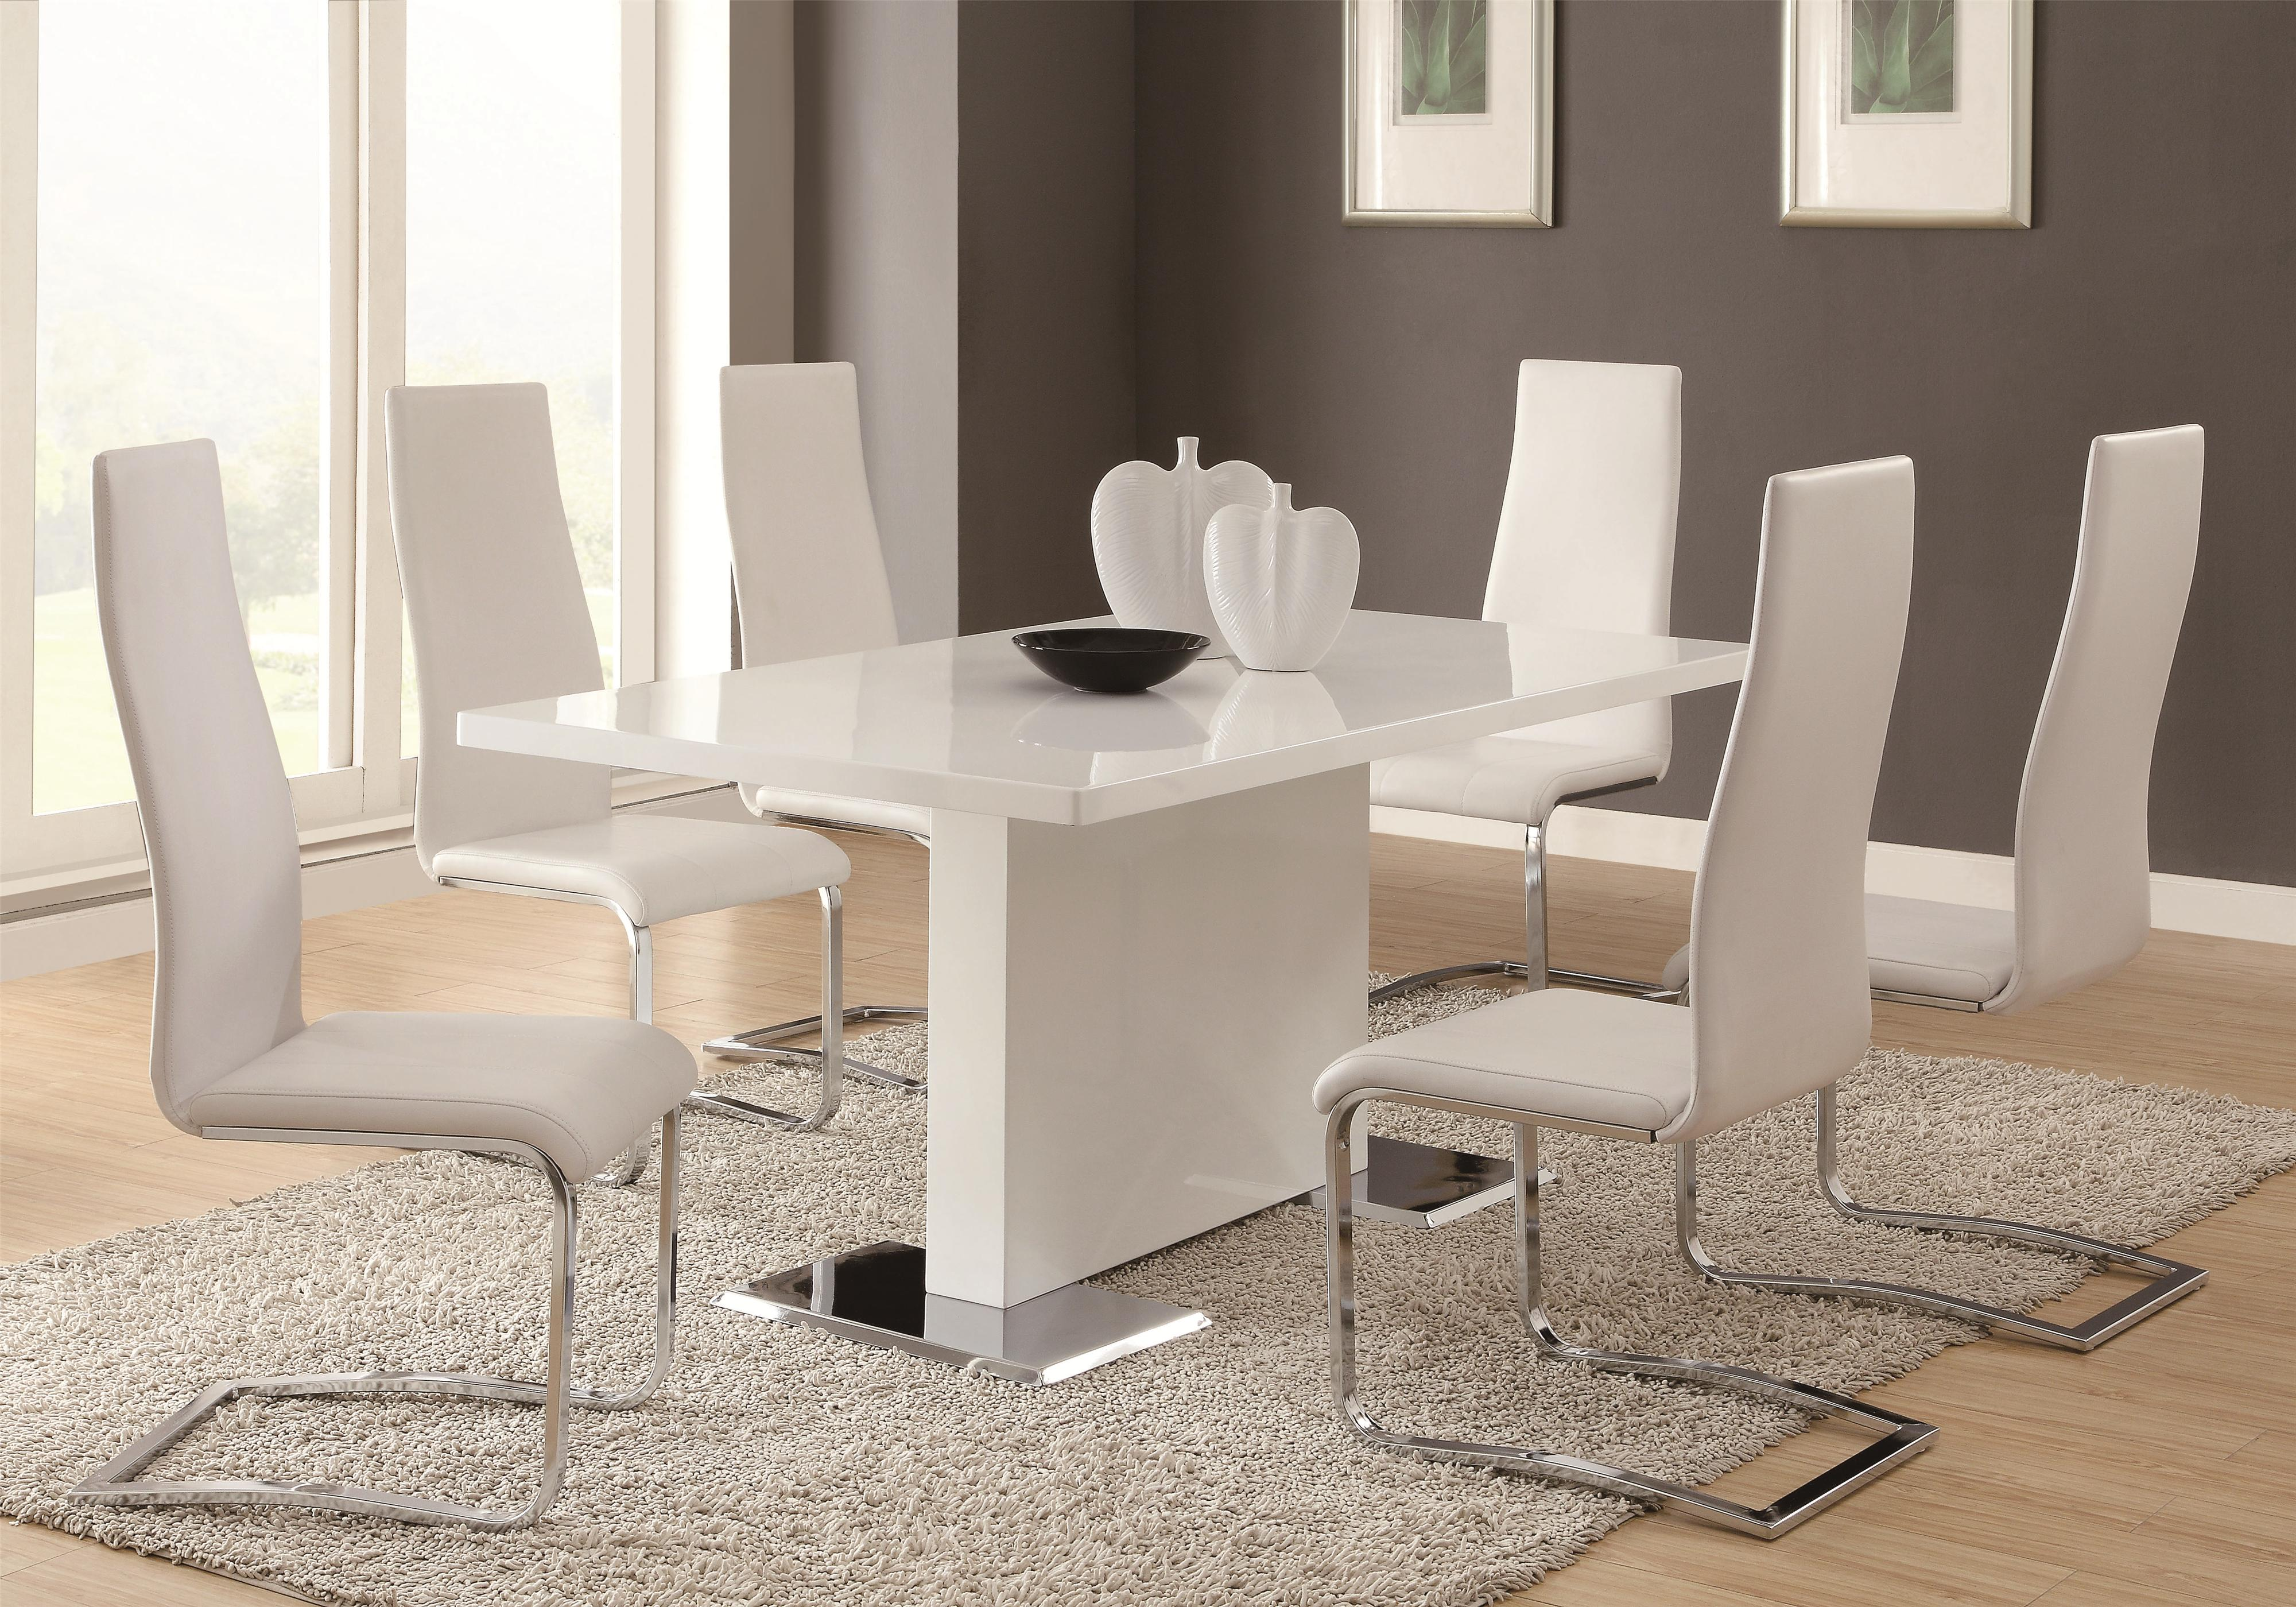 kitchen table and chair sets wingback covers australia coaster modern dining 7 piece white upholstered chairs set